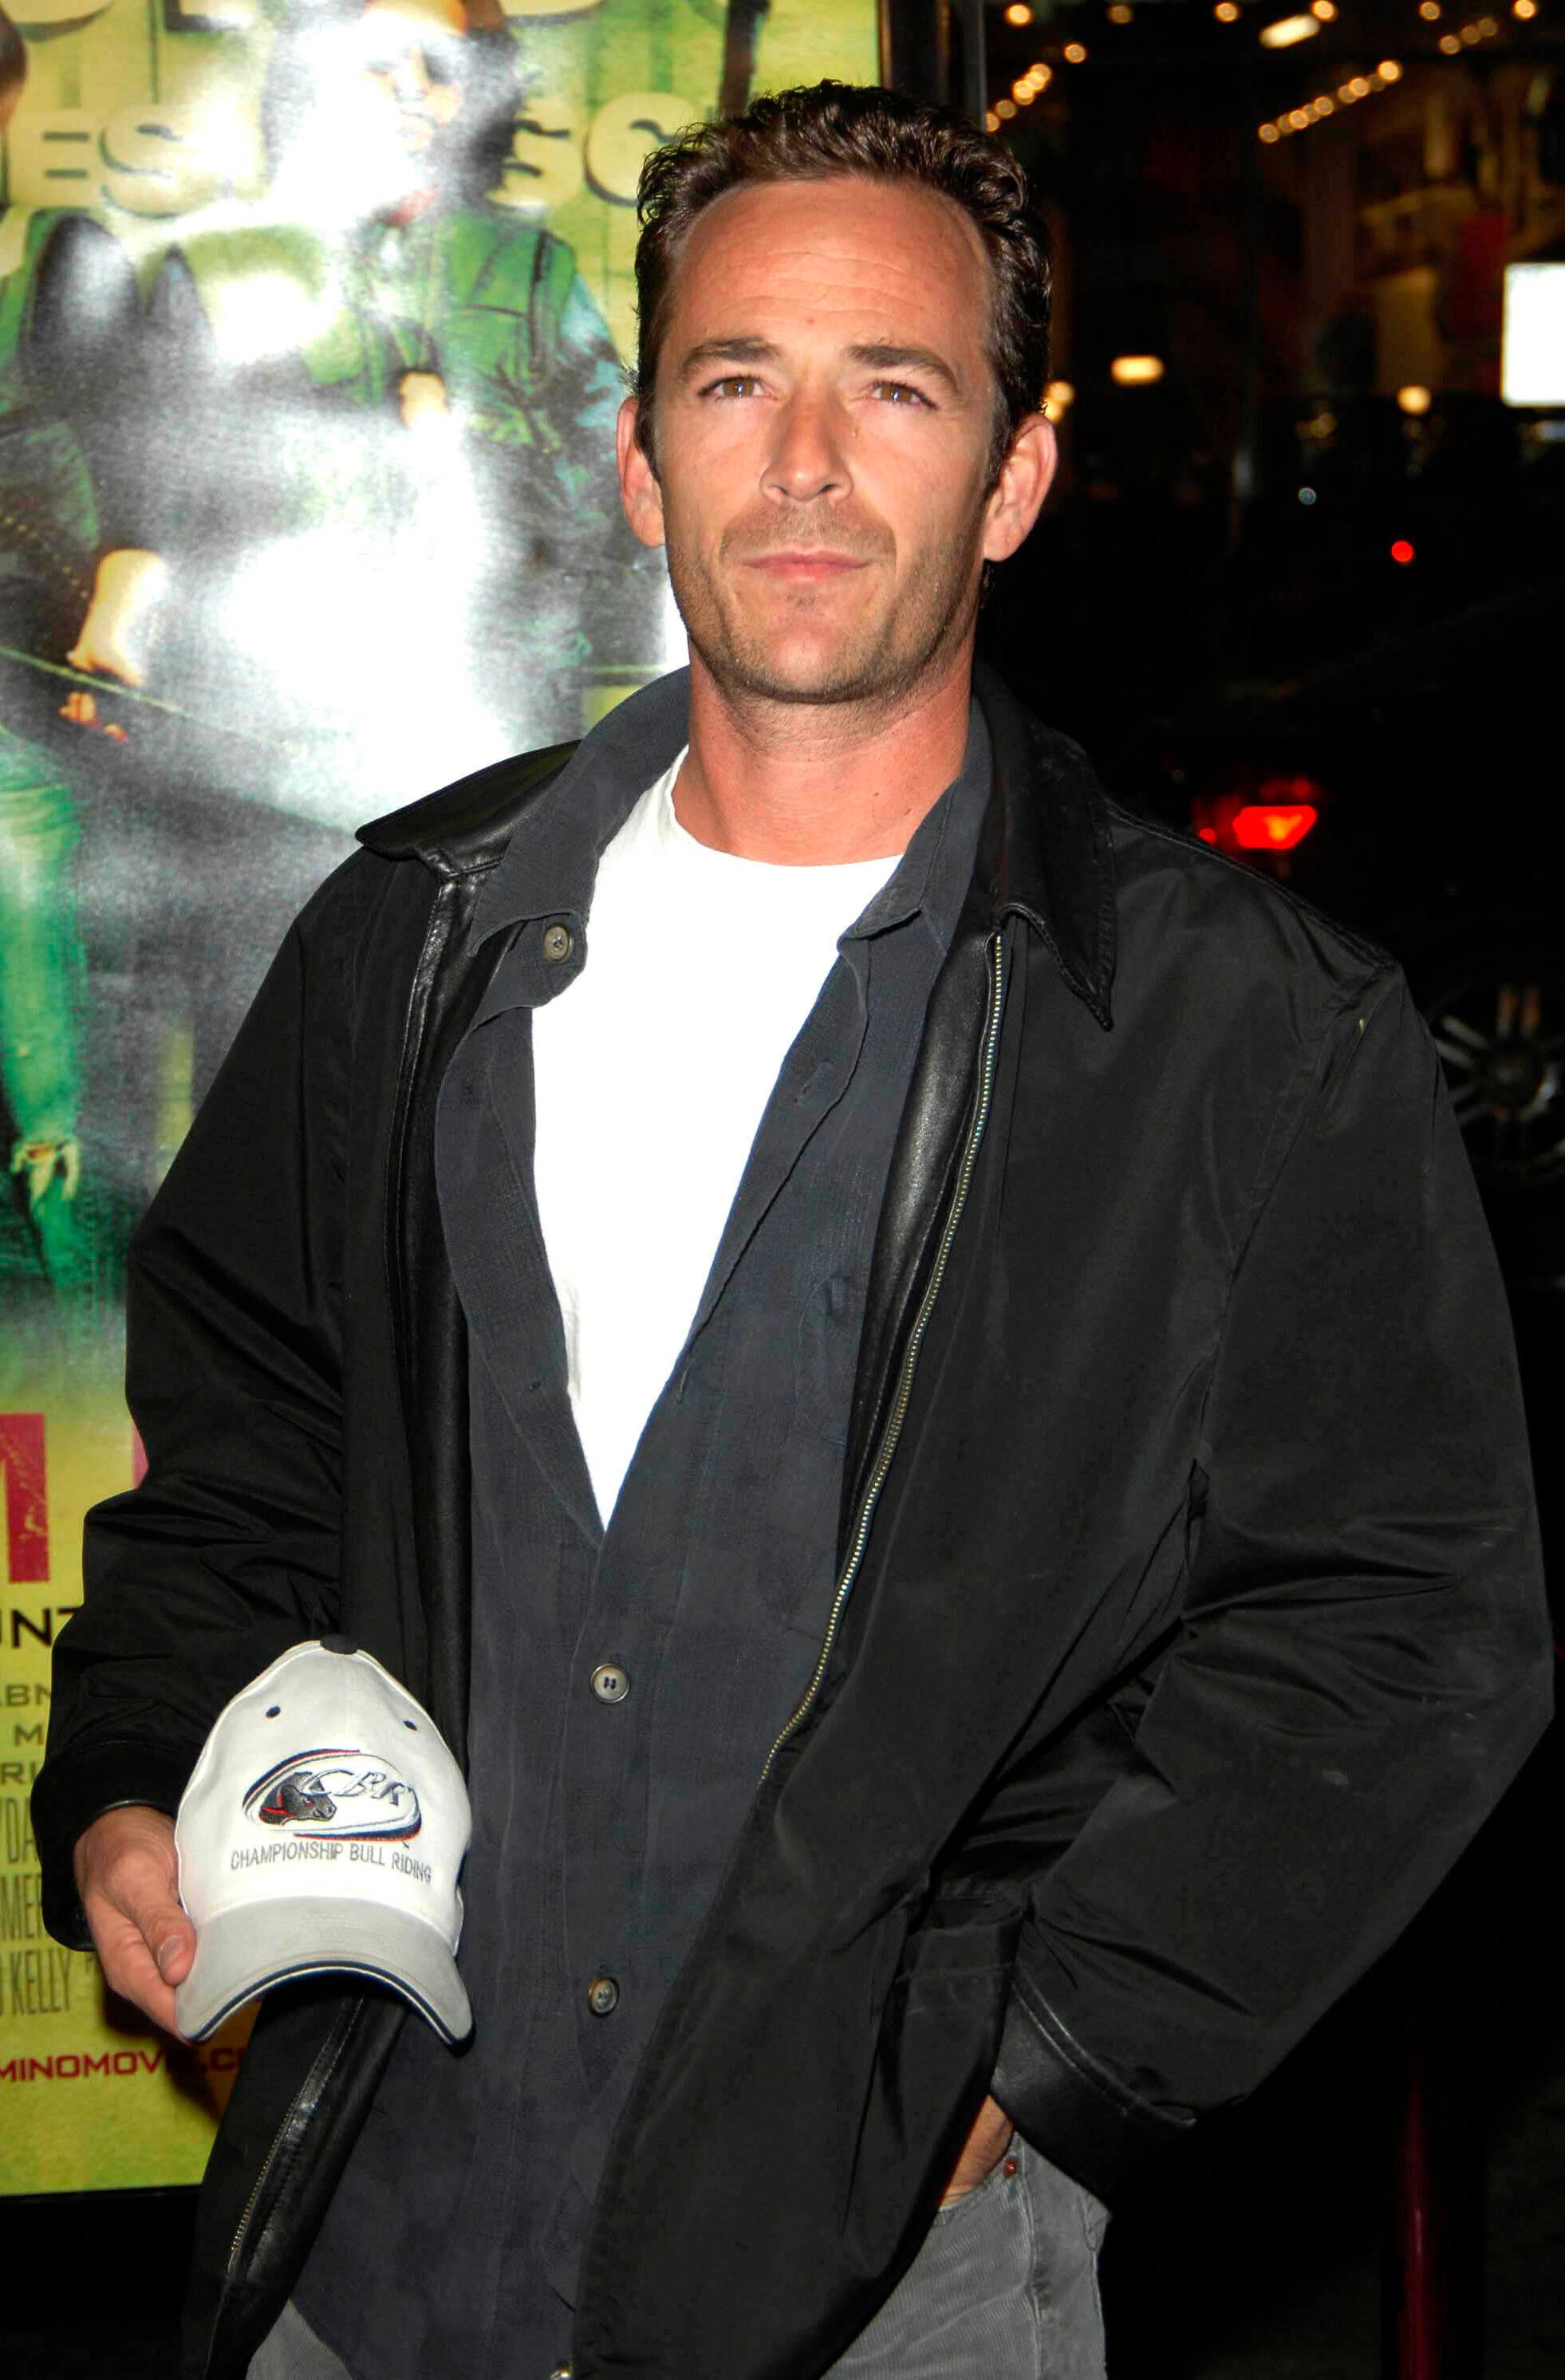 """MARCH 4TH 2019 - Actor Luke Perry has died in Los Angeles, California following a massive stroke suffered Wednesday morning February 27th at his home in Sherman Oaks, California. - File Photo by: Michael Germana/STAR MAX/IPx 2005 10/11/05 Luke Perry at the premiere of """"Domino"""". (Los Angeles, CA)"""